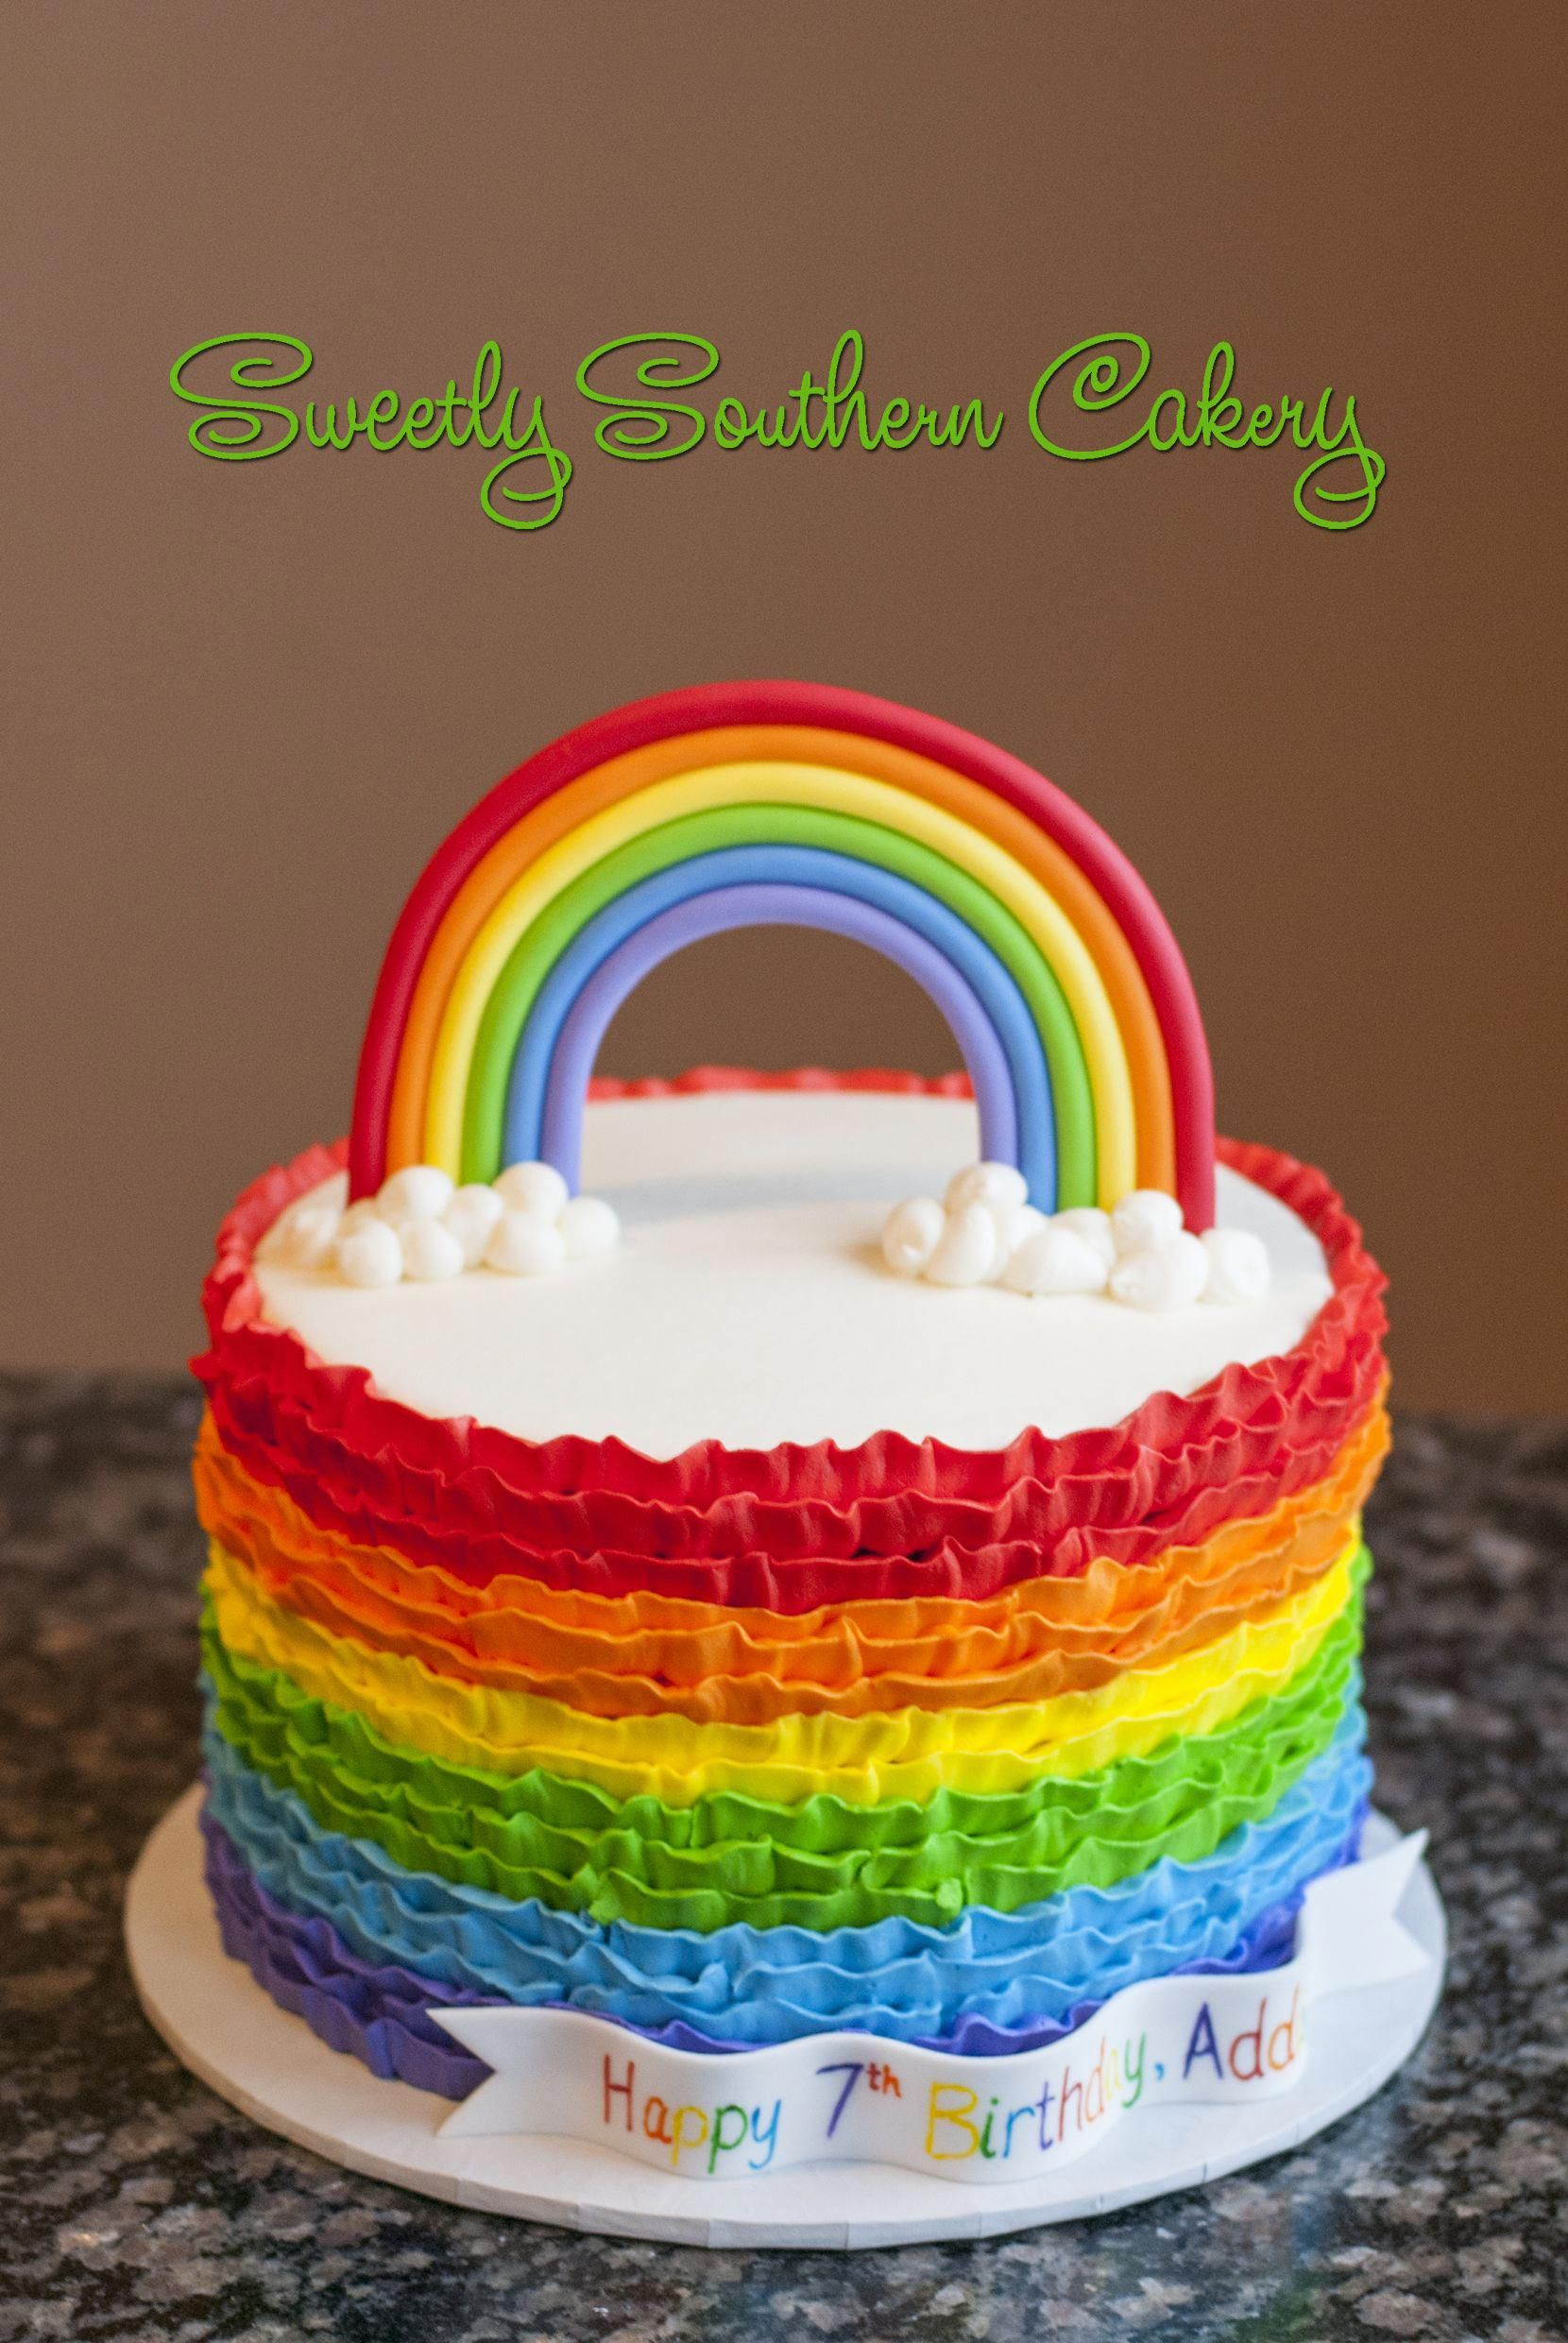 How To Make A Rainbow Birthday Cake With Images Rainbow